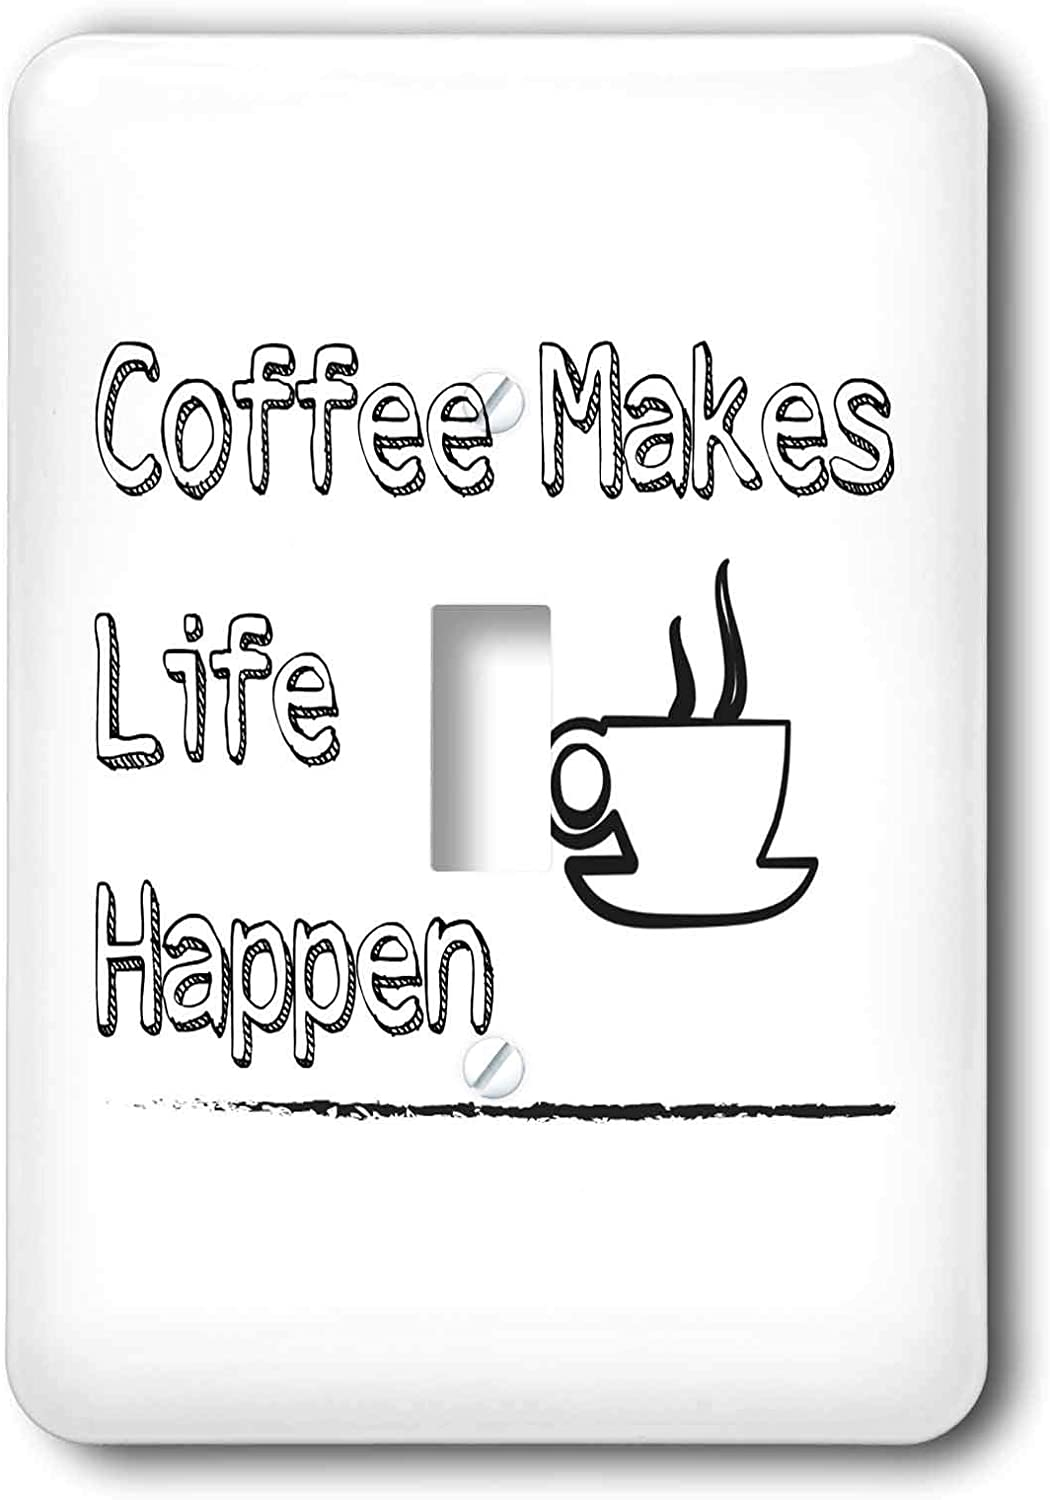 3dRose Carrie 3drose Merchant quote - Image of Coffee Makes Life Happen - single toggle switch (lsp_308019_1)